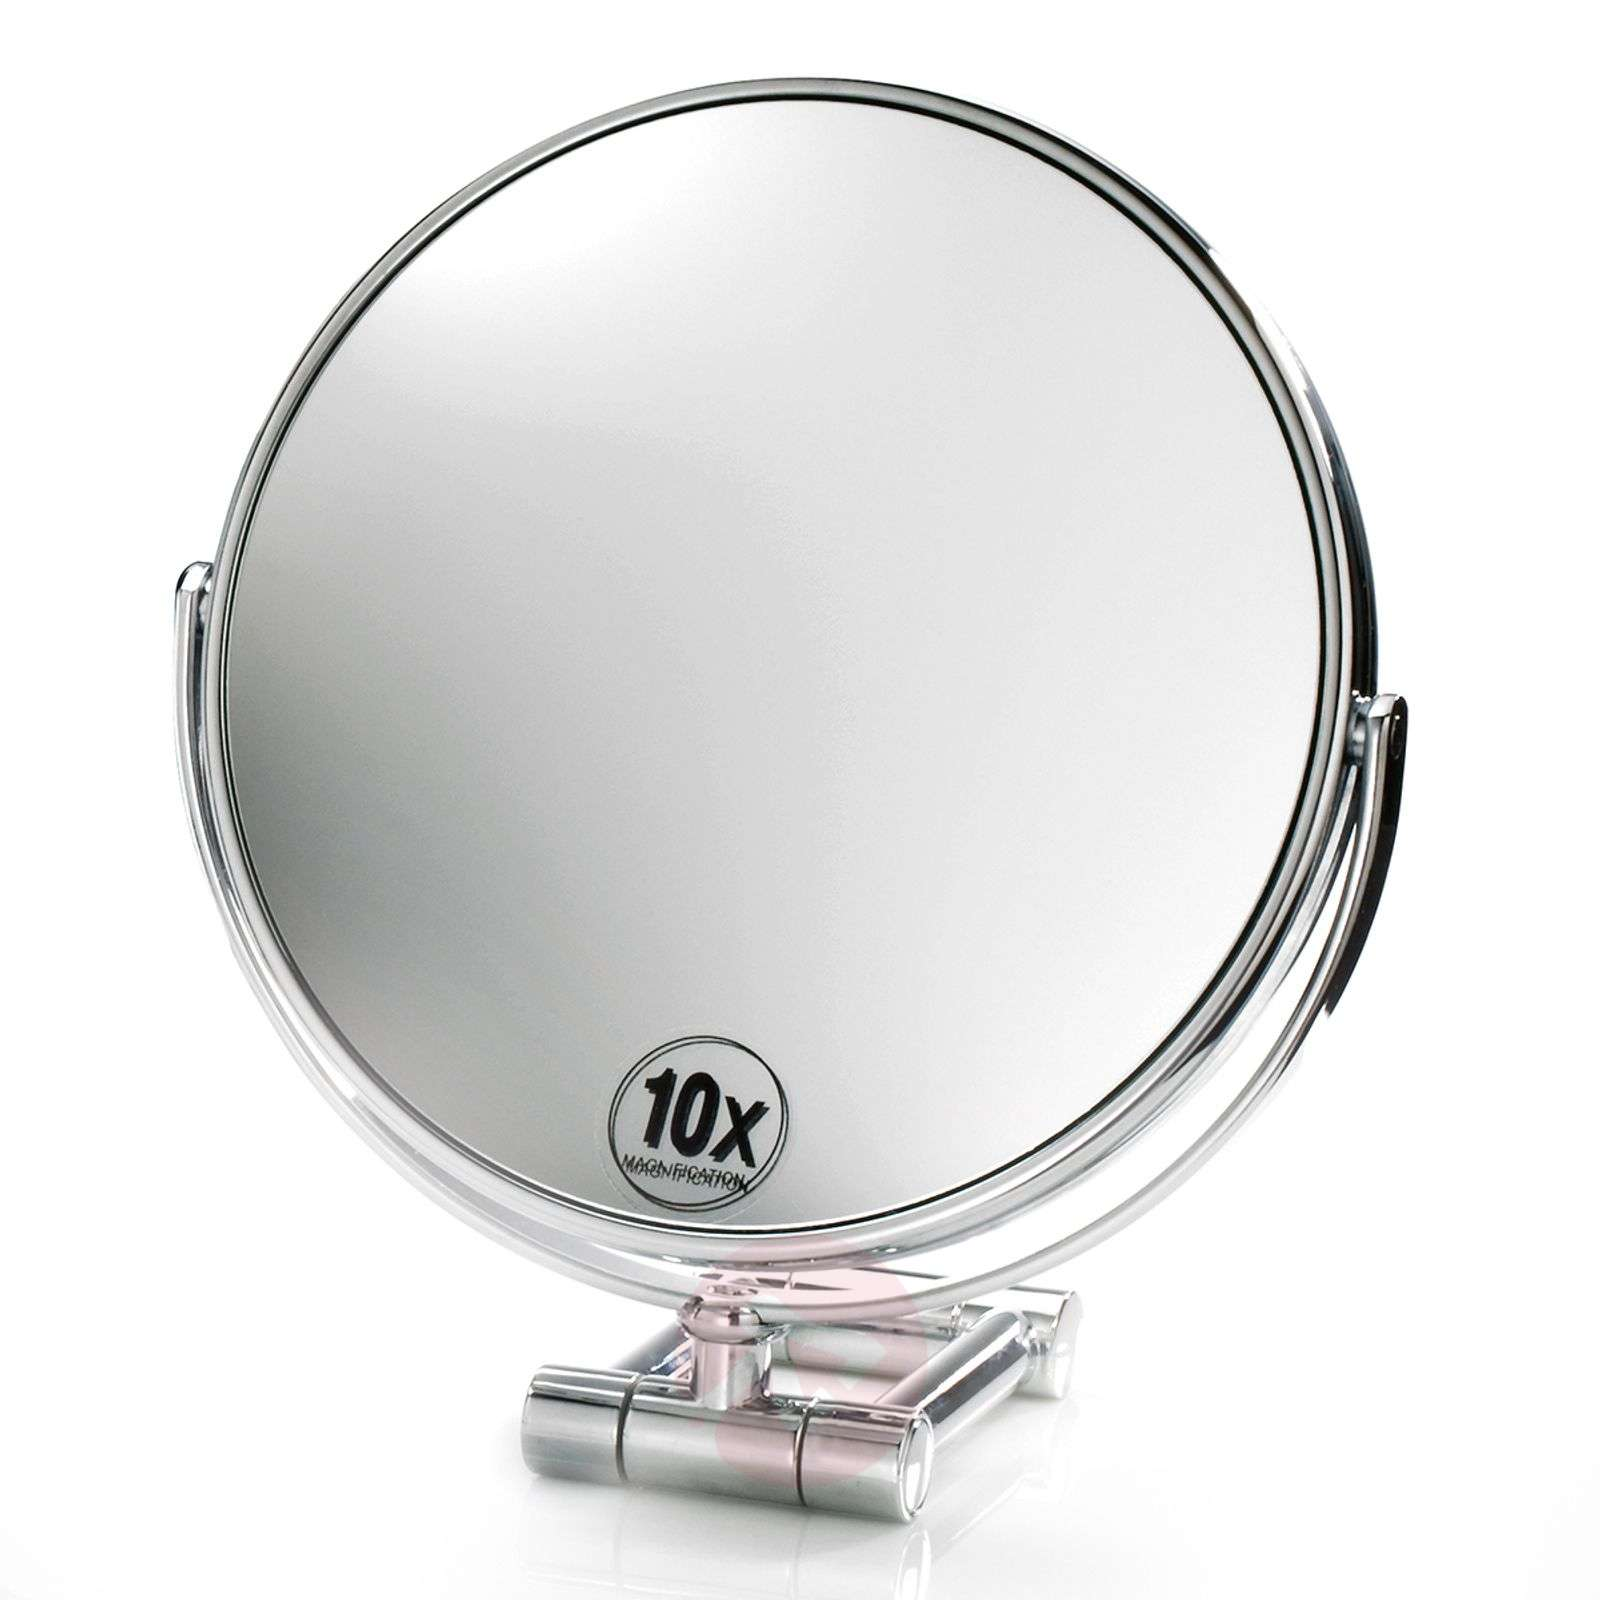 SPT 50 functional cosmetic mirror-2504357X-01